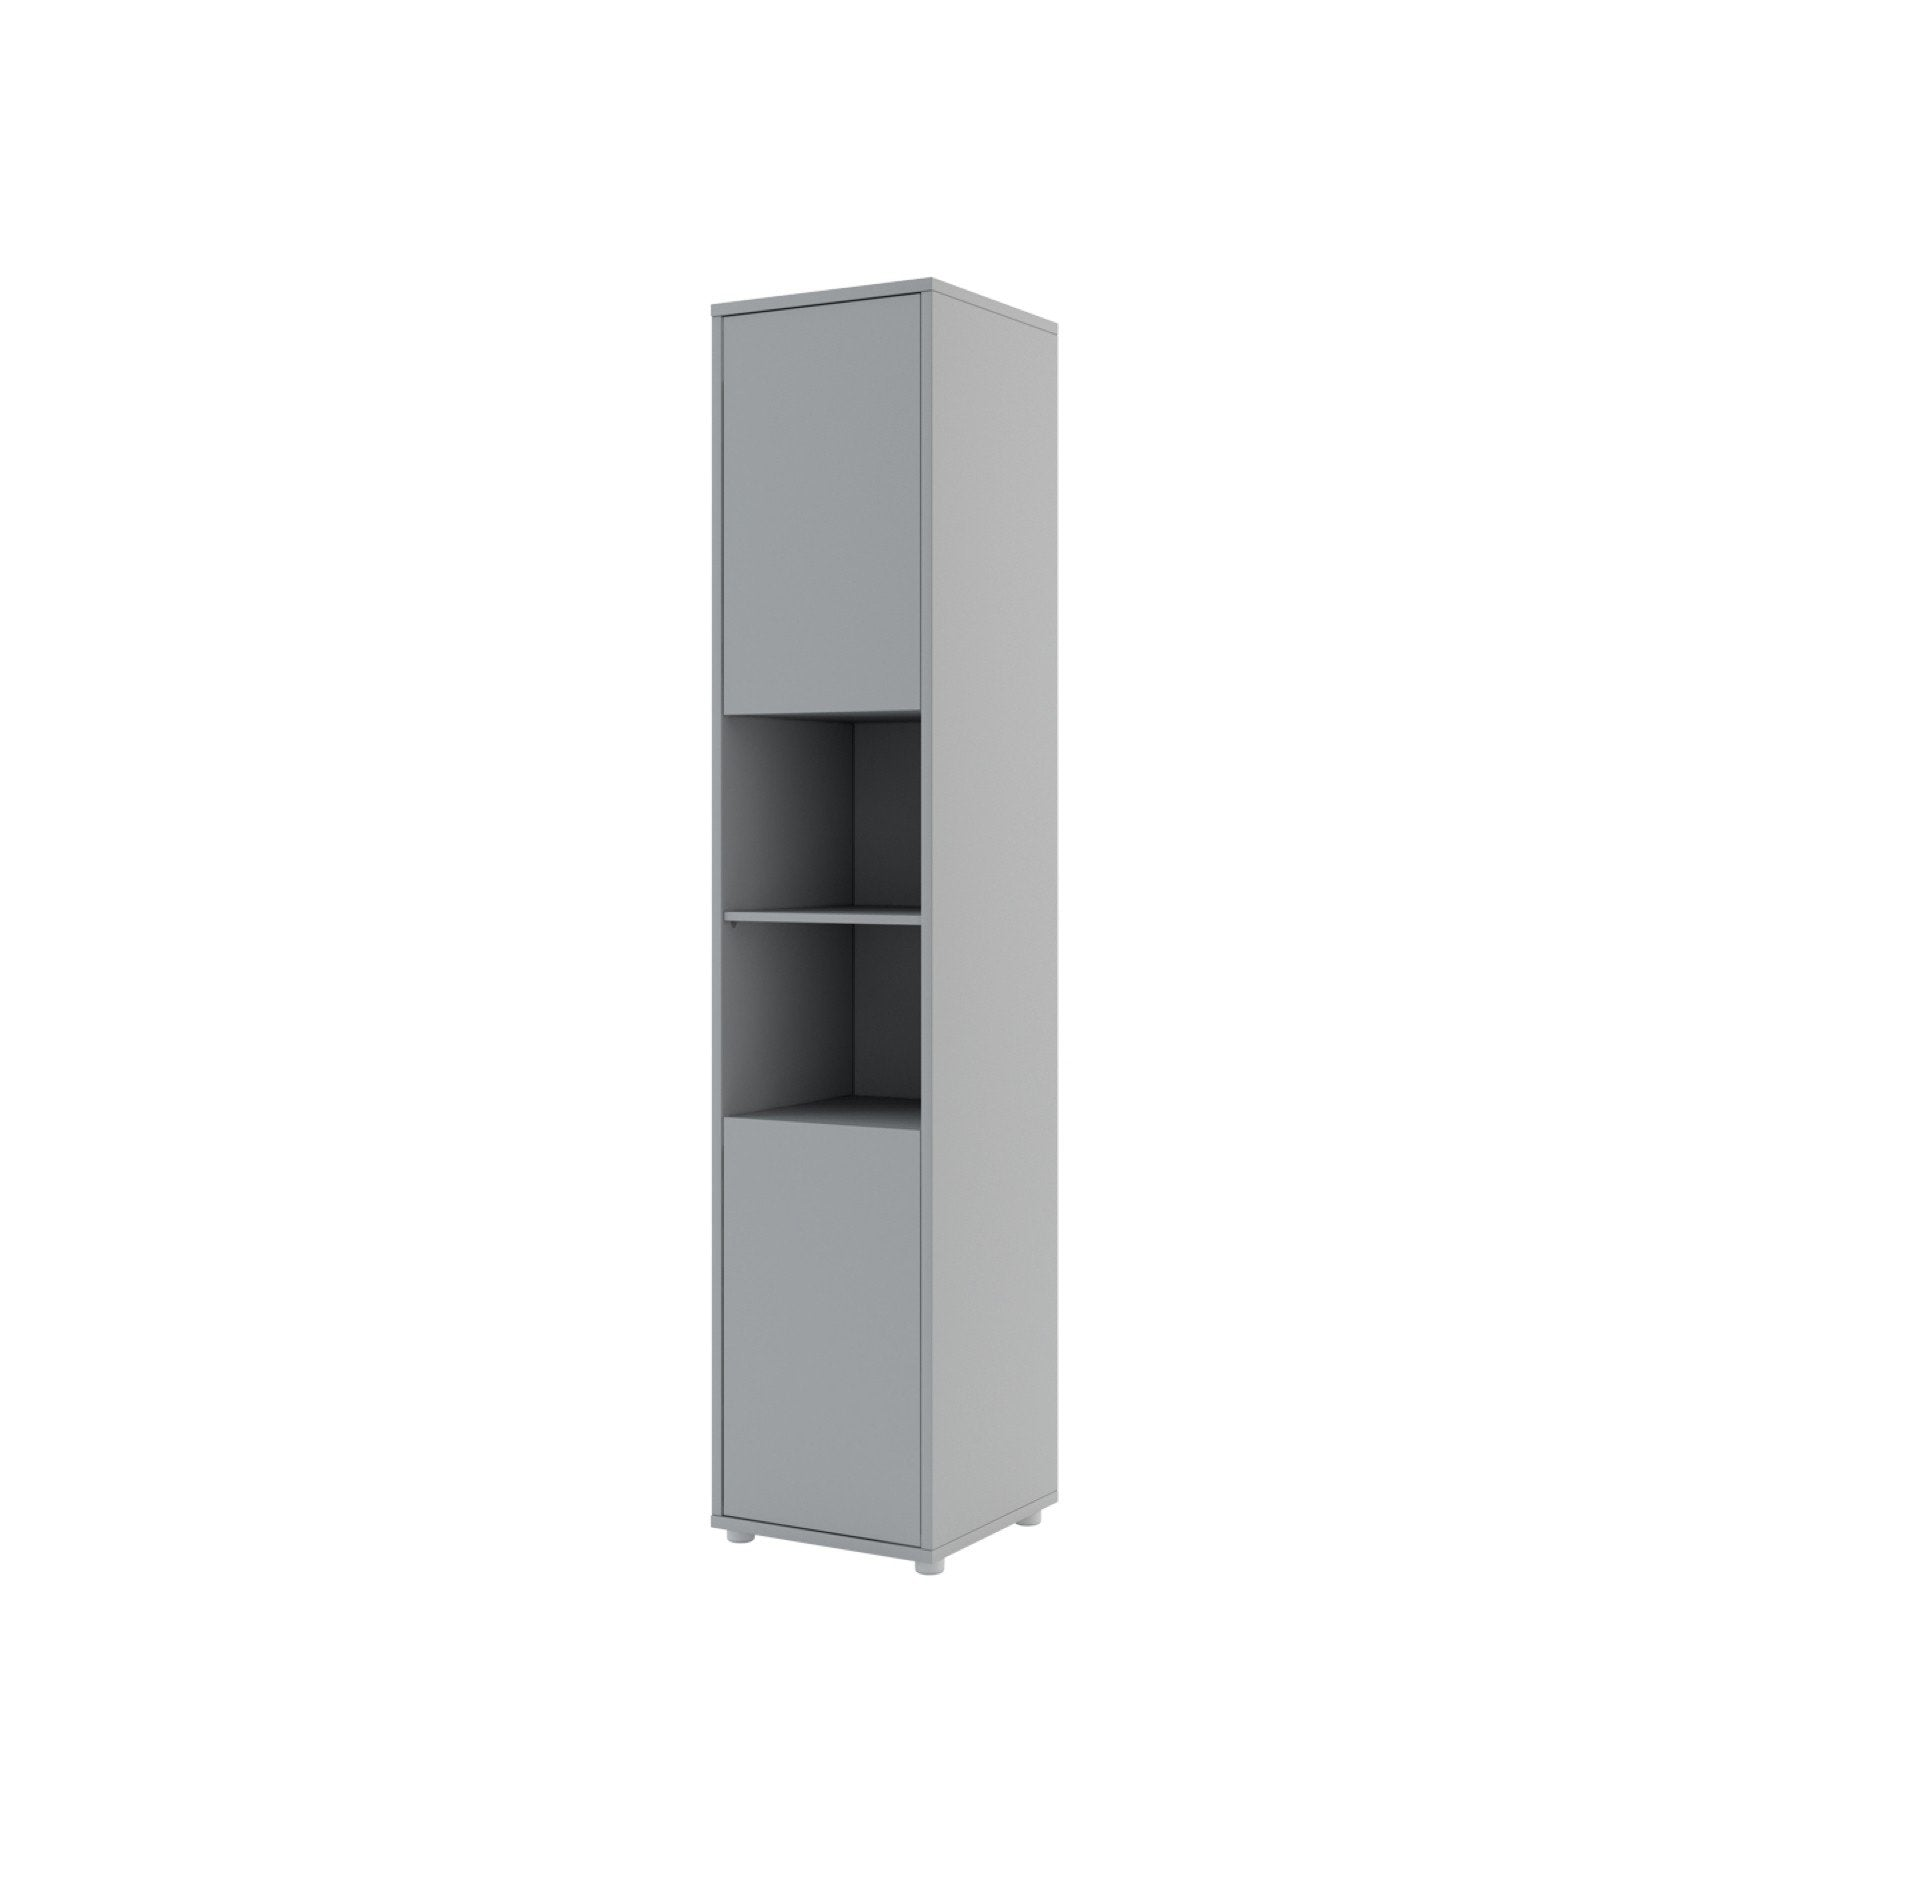 Bc 08 Tall Storage Cabinet For Vertical Wall Bed Concept Arte N Furniture Ltd